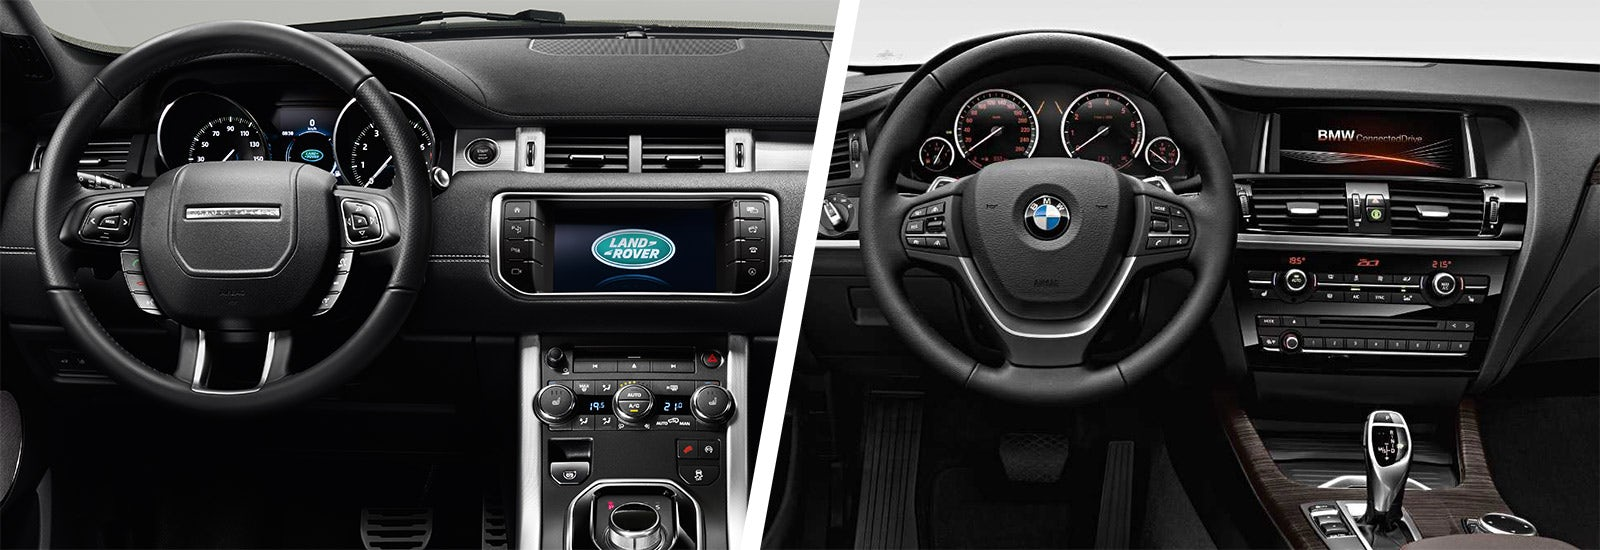 Range Rover Evoque Vs BMW X3 Interior